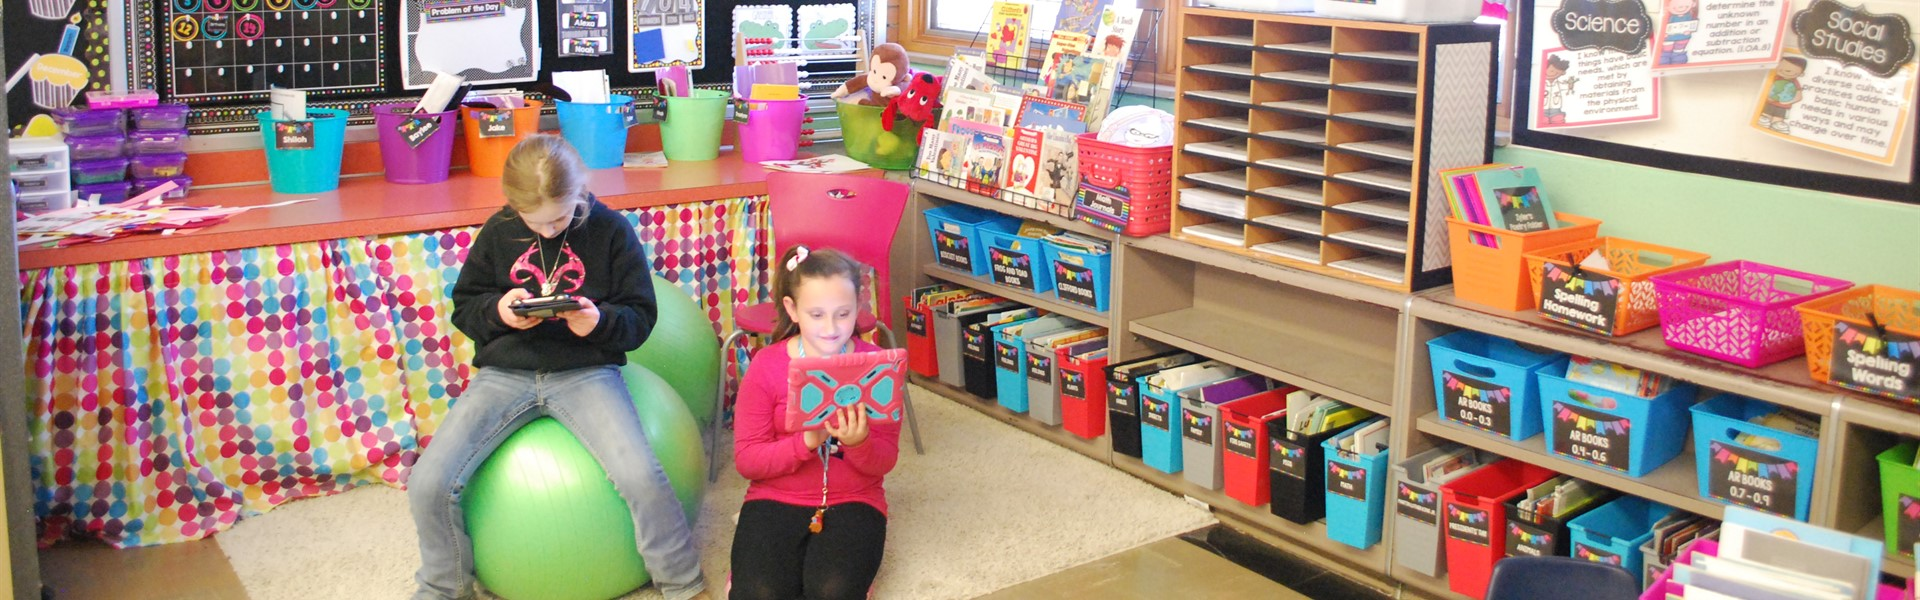 Warsaw kids love to READ!